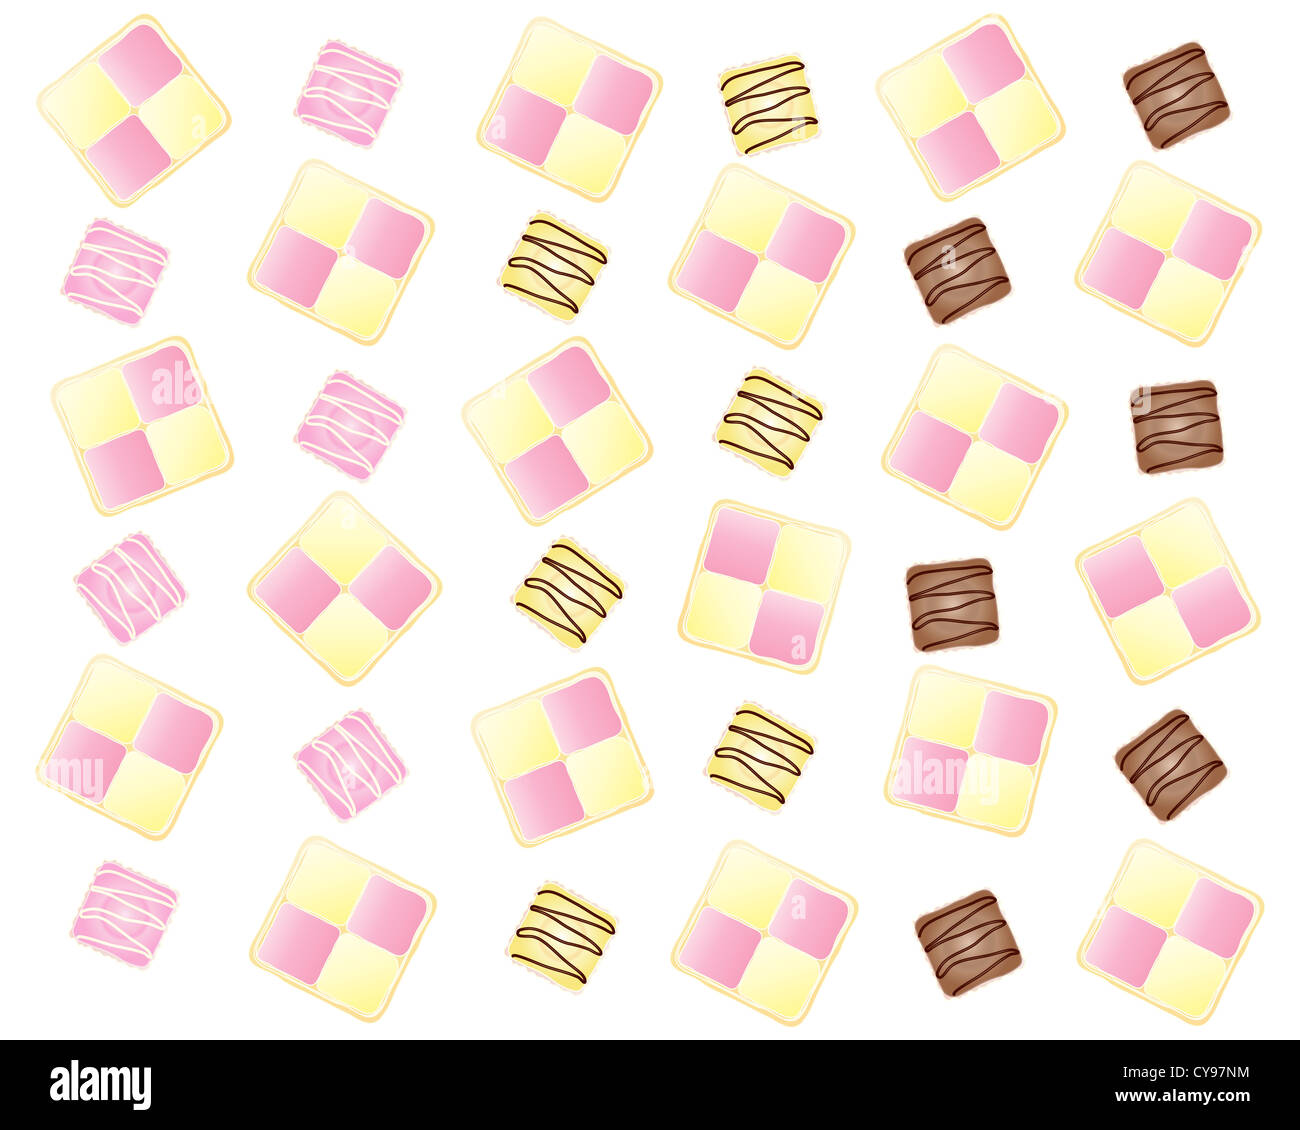 an illustration of an abstract cake design with Battenburg slices and French fancies in a fun layout on a white - Stock Image